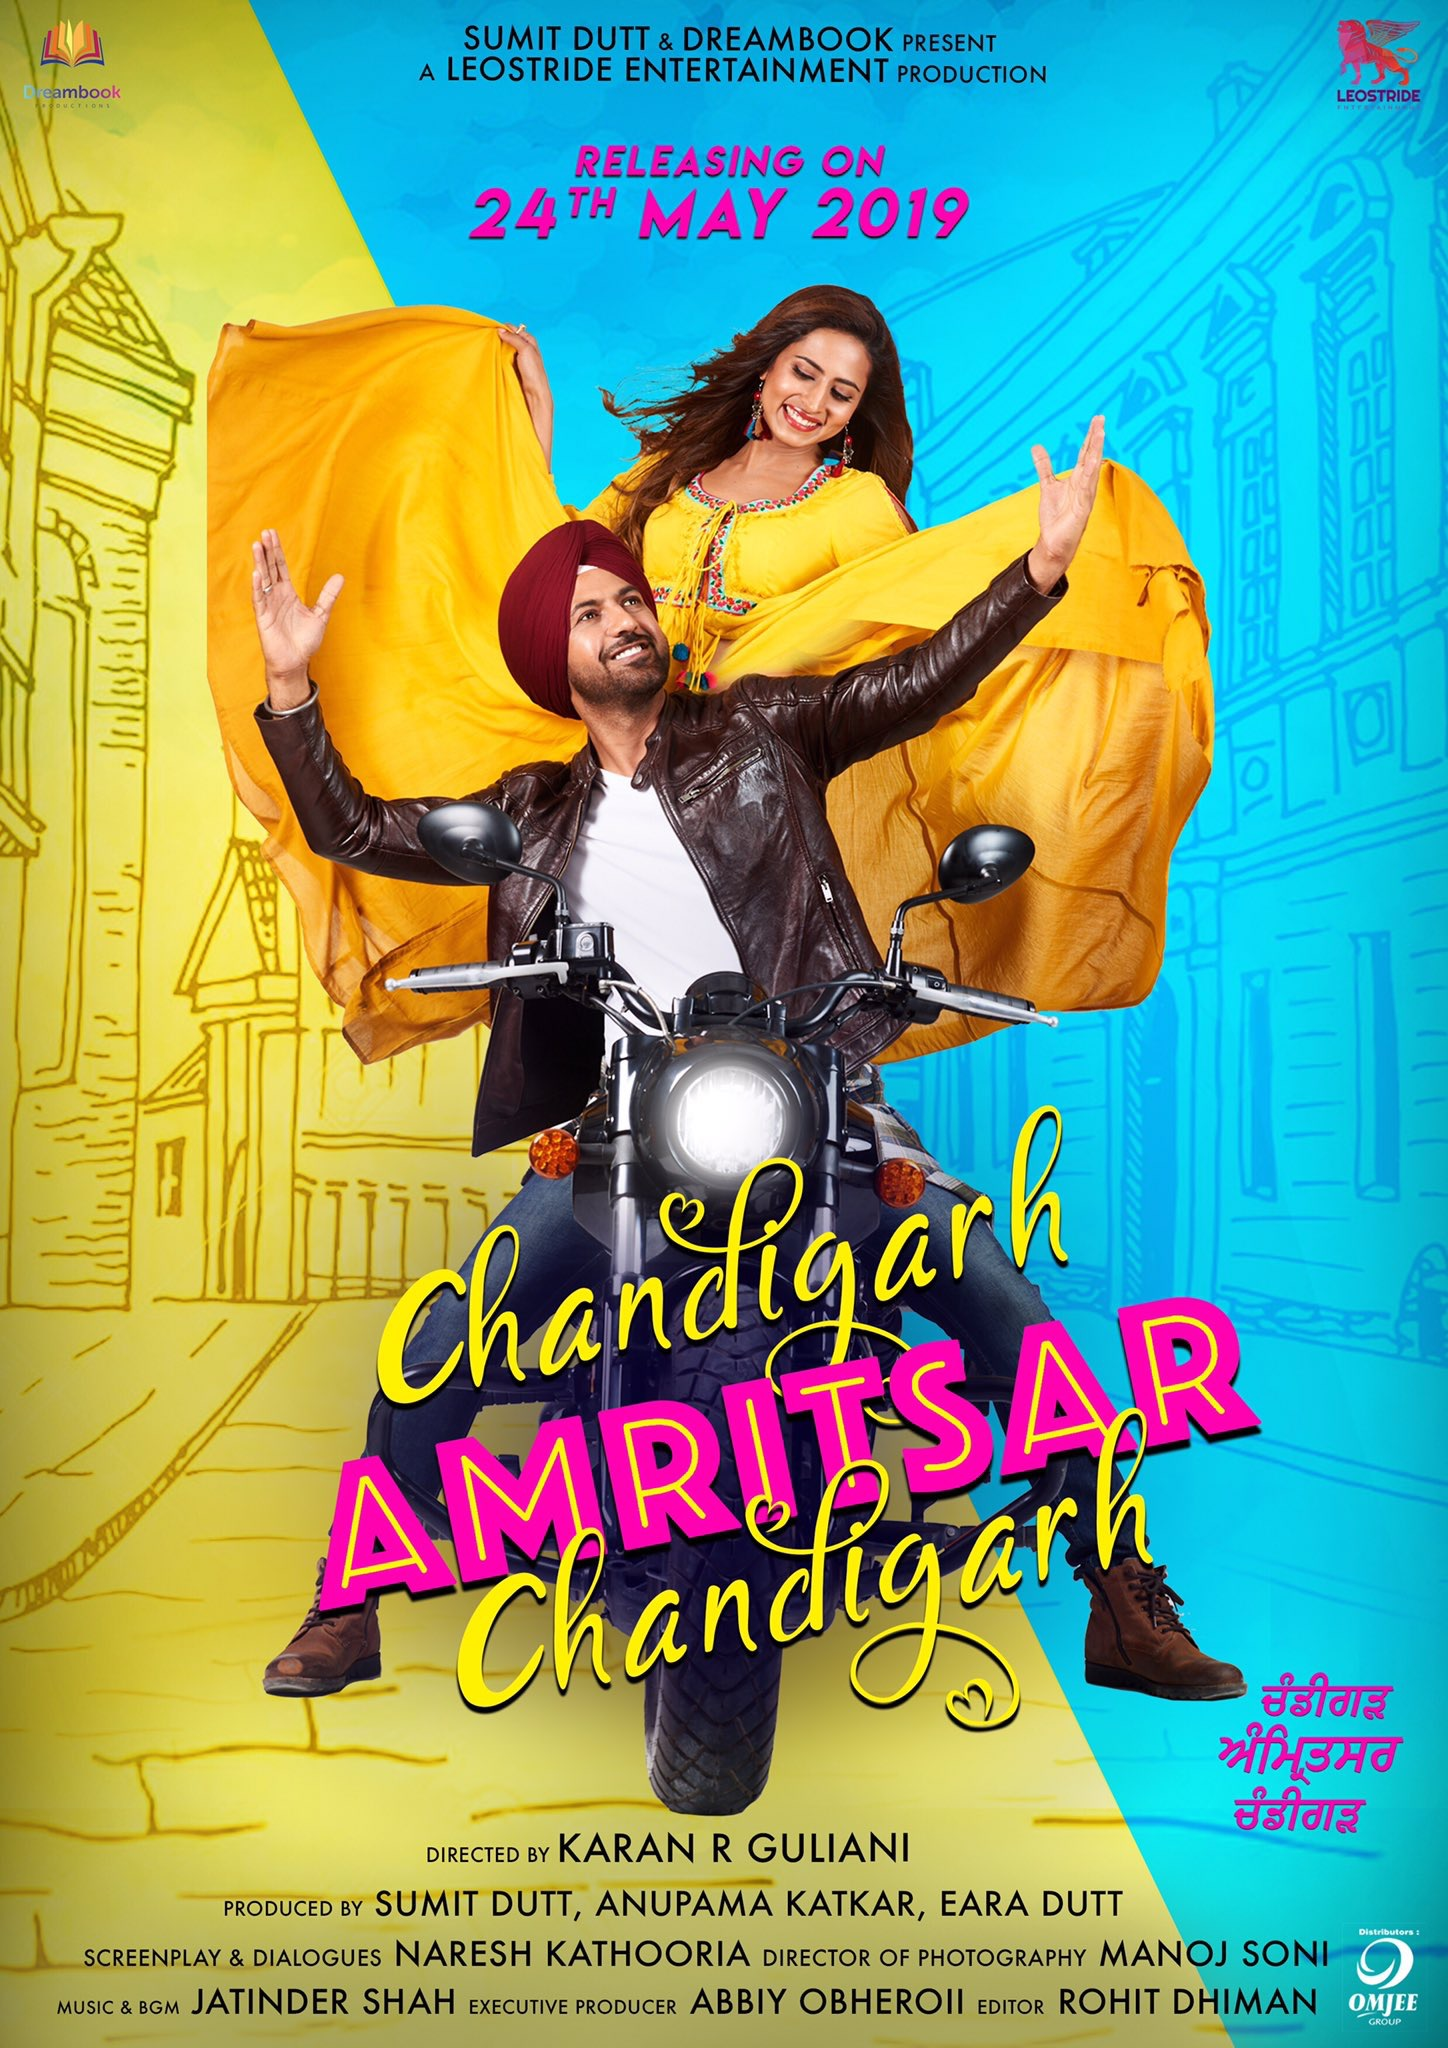 Chandigarh Amritsar Chandigarh (2019) Punjabi 480p HDRip x264